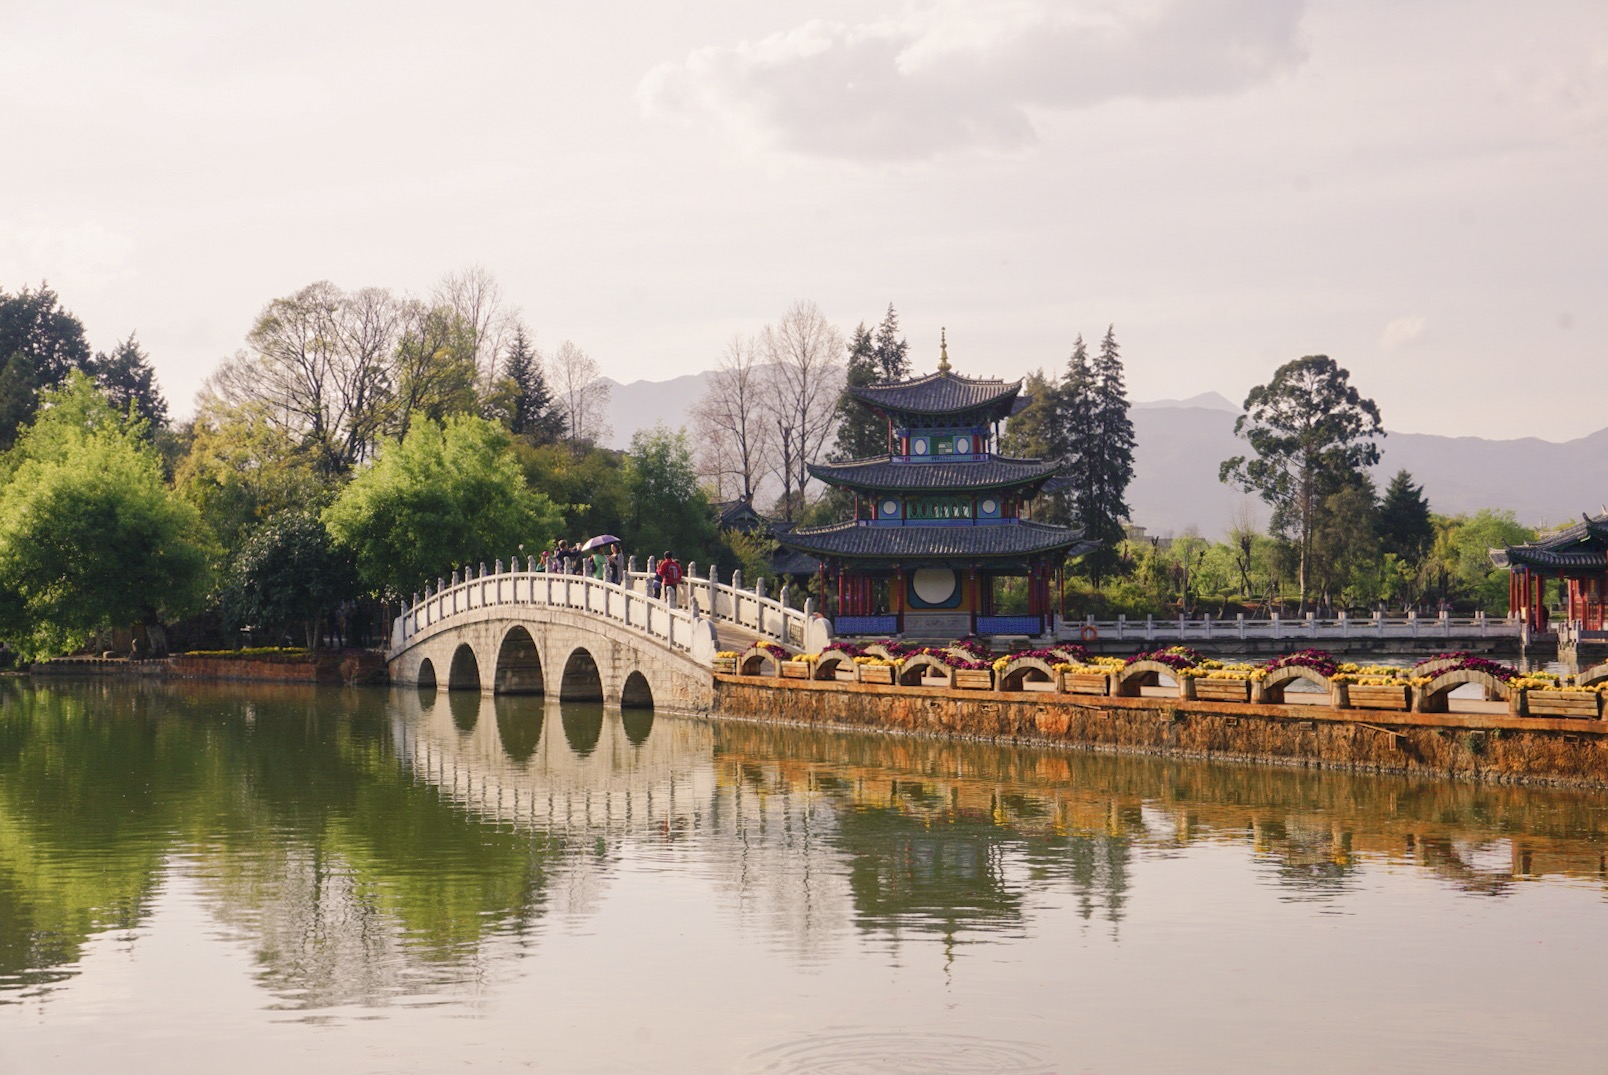 CocoGigiDesign -China-Lijiang 2018_4435 2.JPG